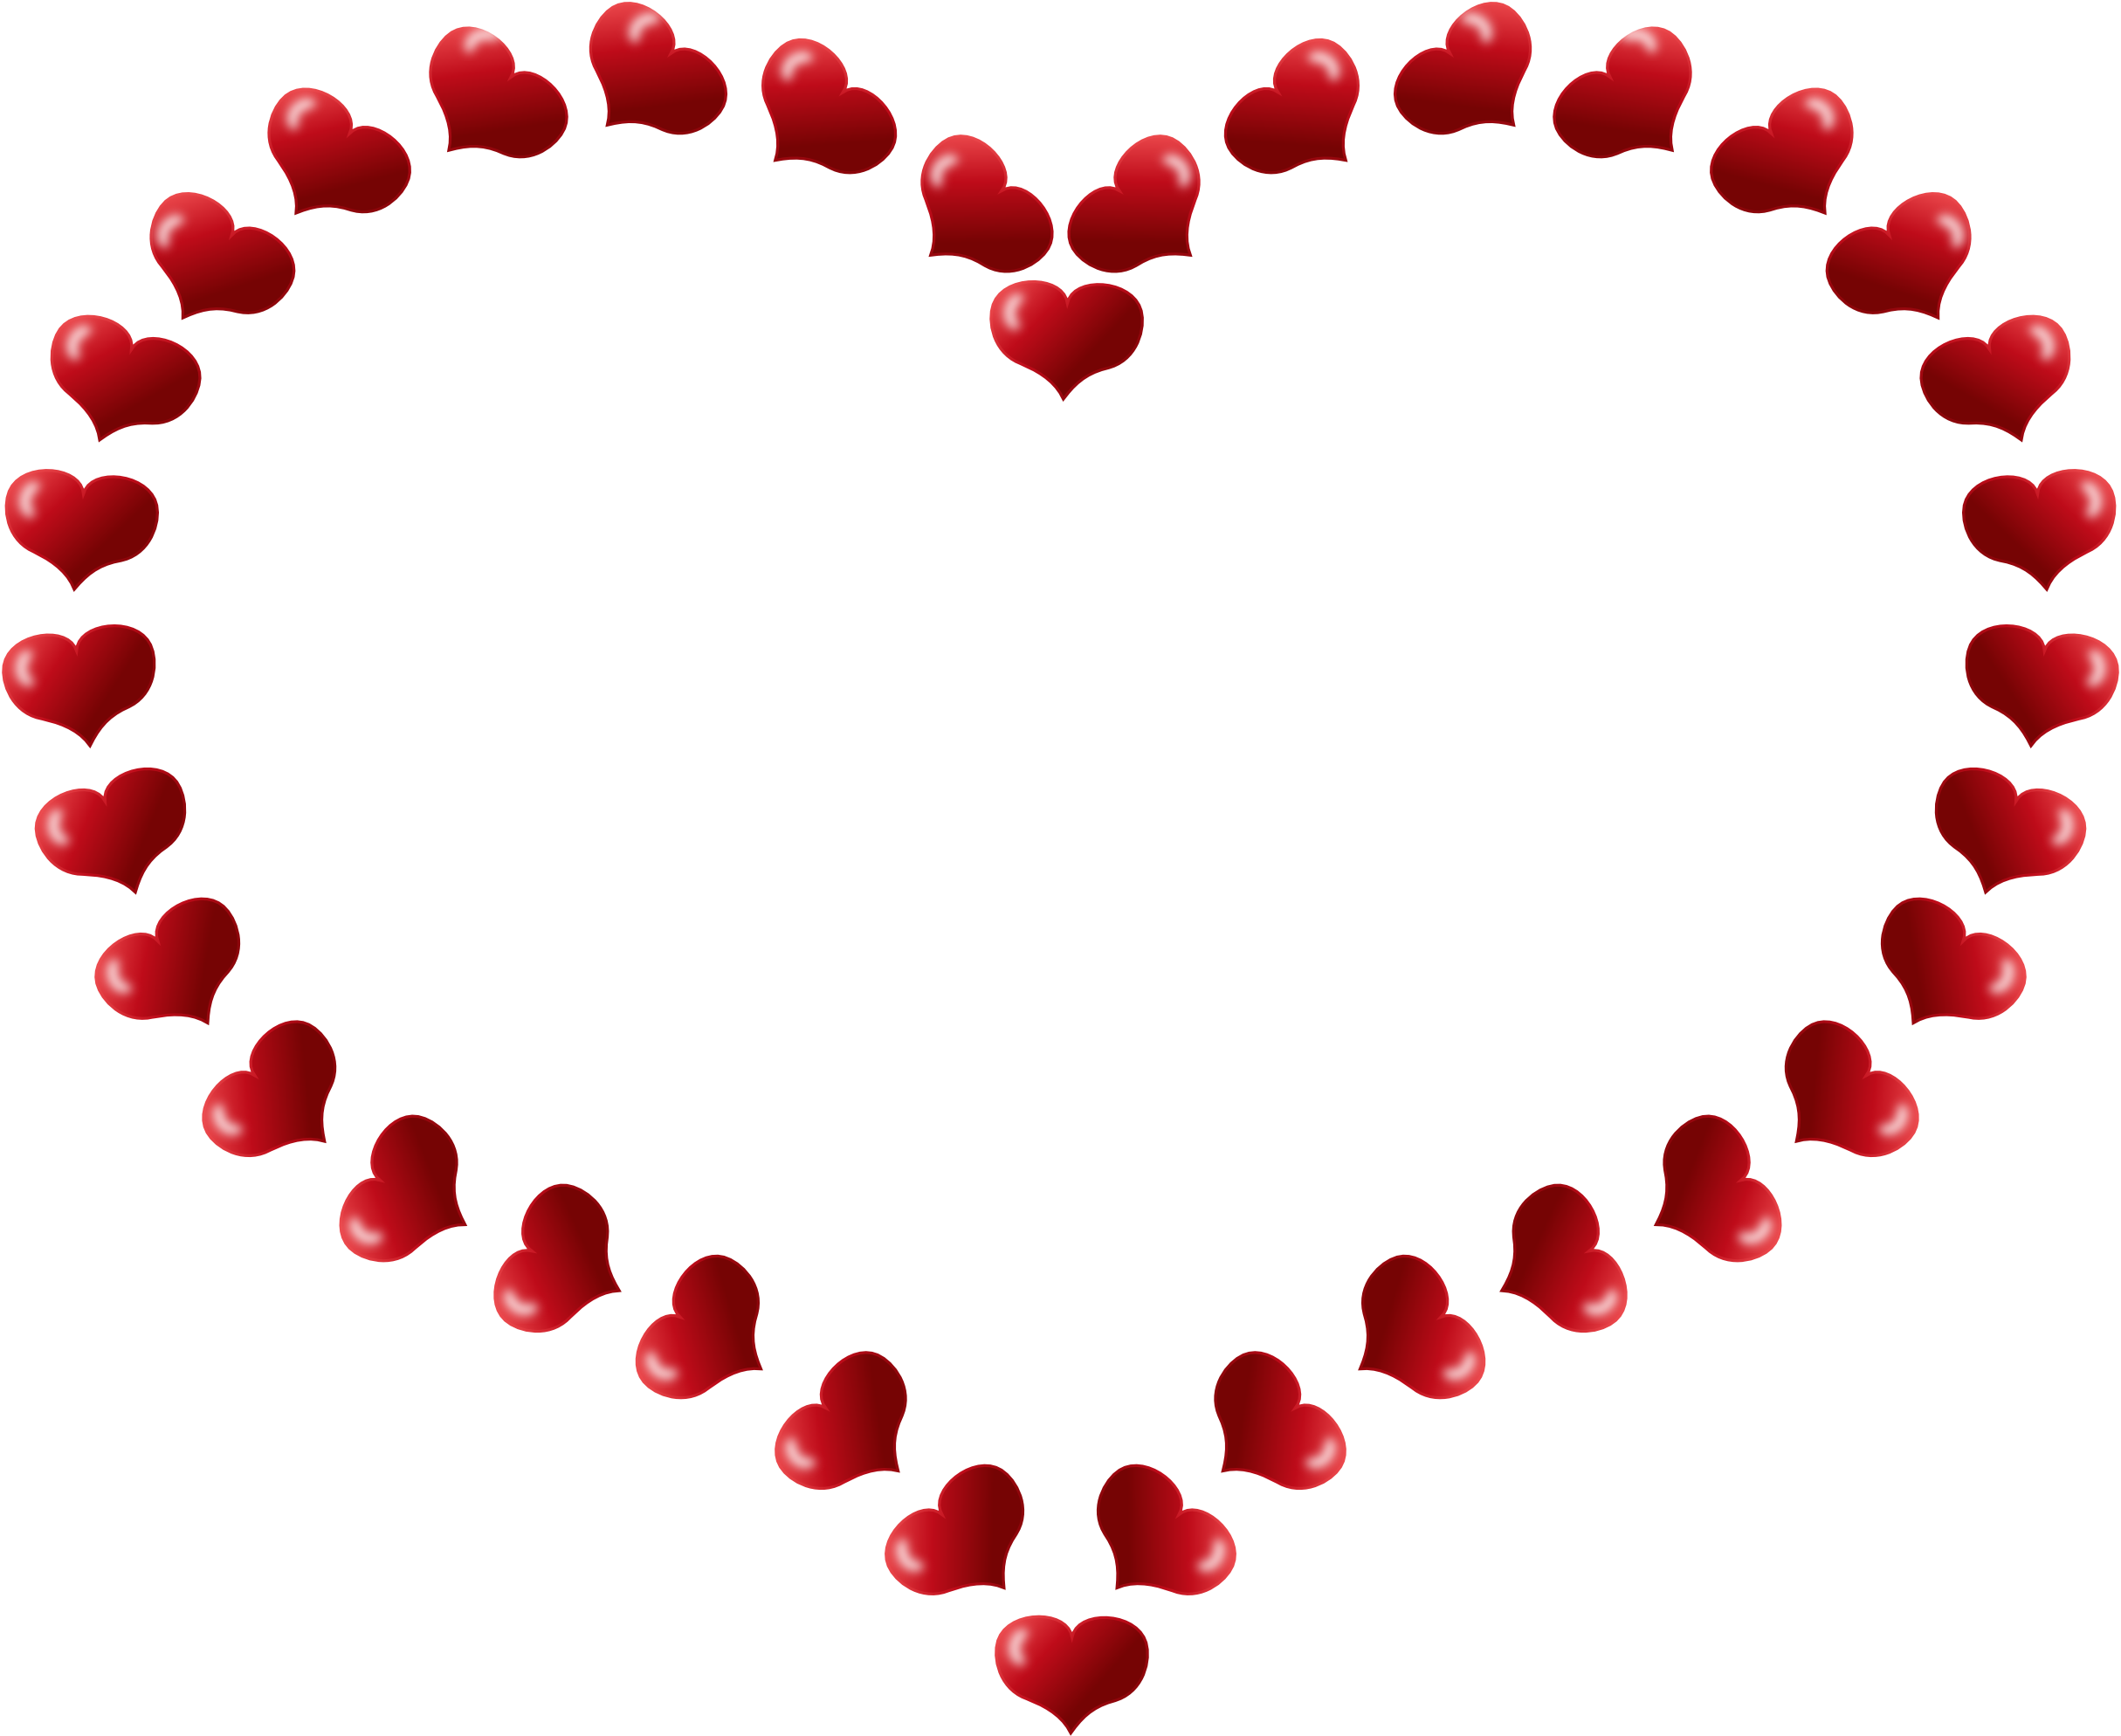 Valentines Free Clipart Library Valentine Hearts Gallery Heart Clipart 2429x1988 Wallpaper Teahub Io